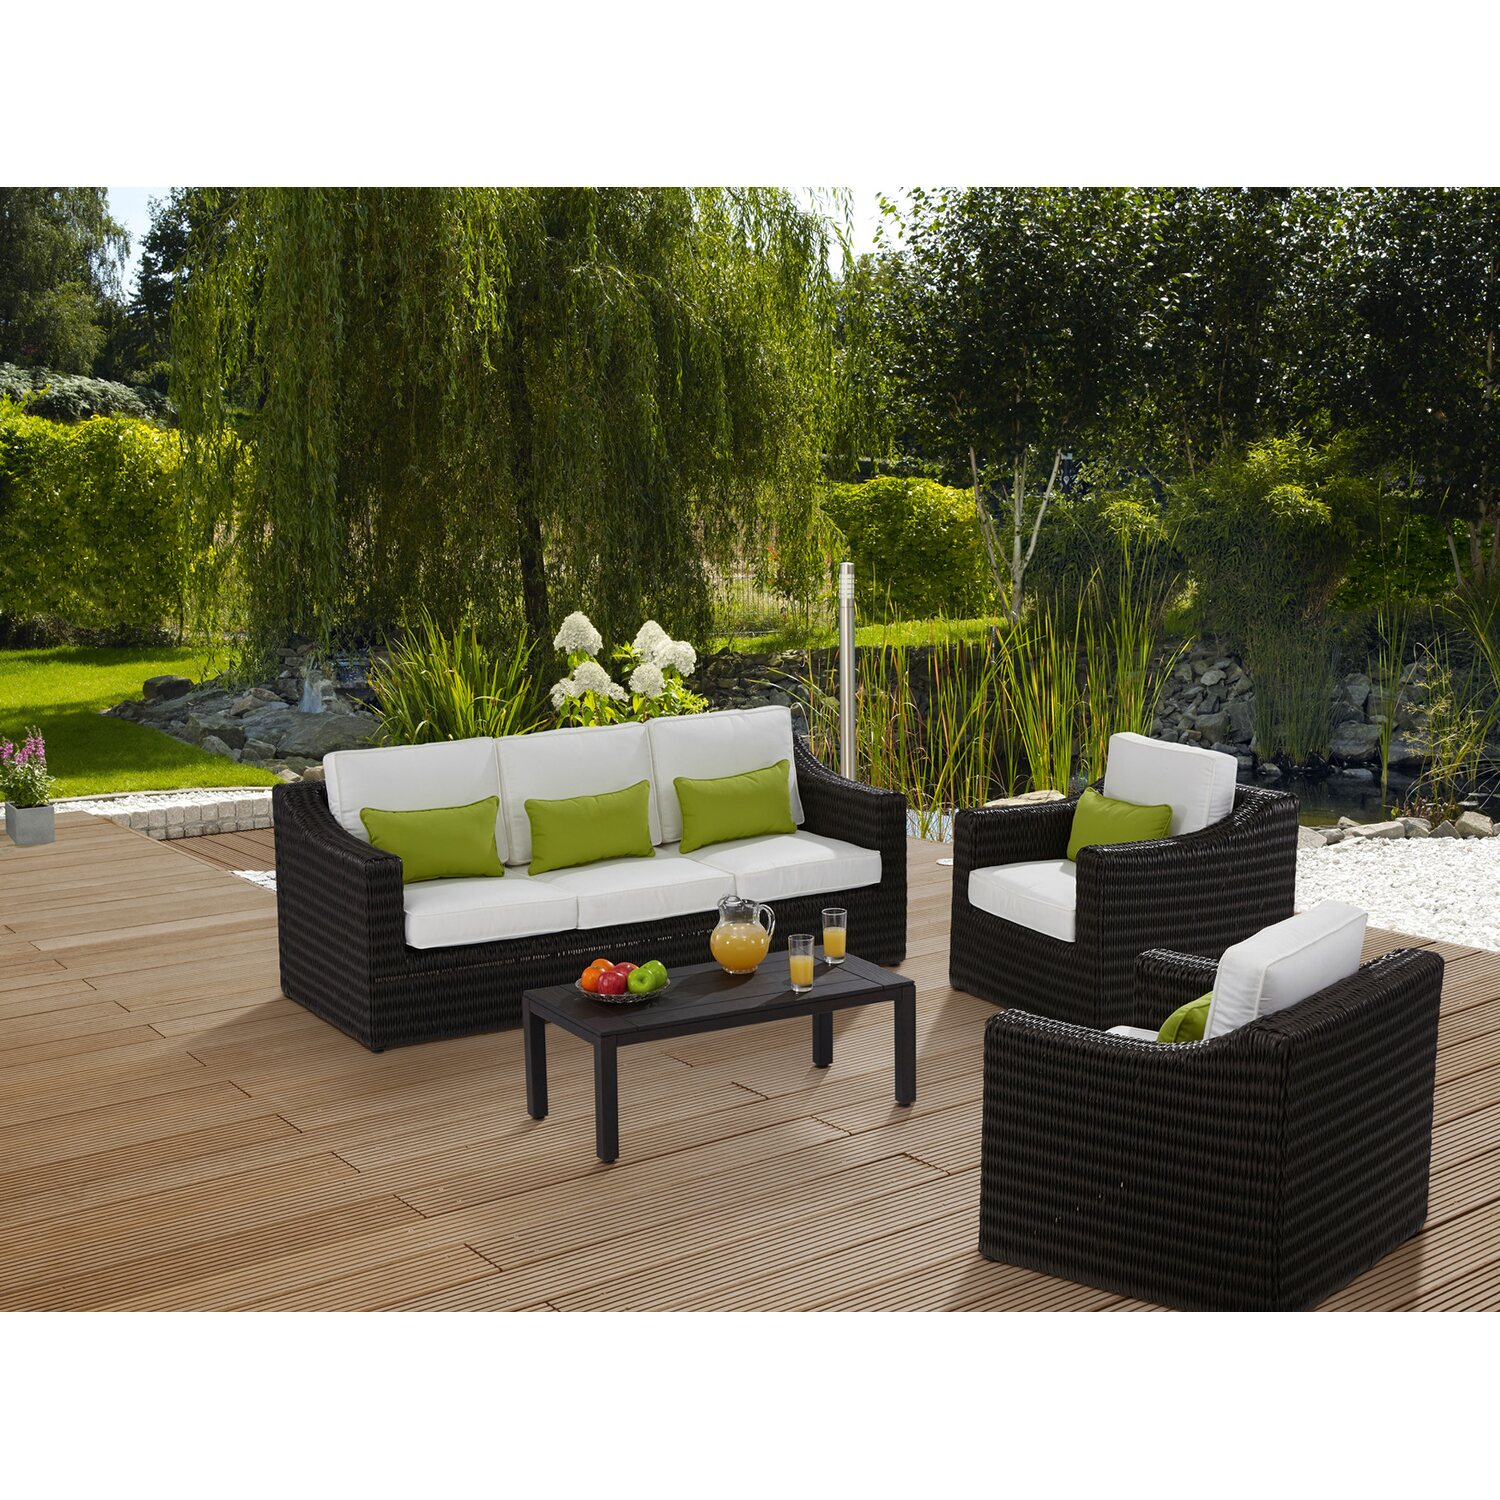 obi gartenm bel gruppe jackson 4 tlg kaufen bei obi. Black Bedroom Furniture Sets. Home Design Ideas